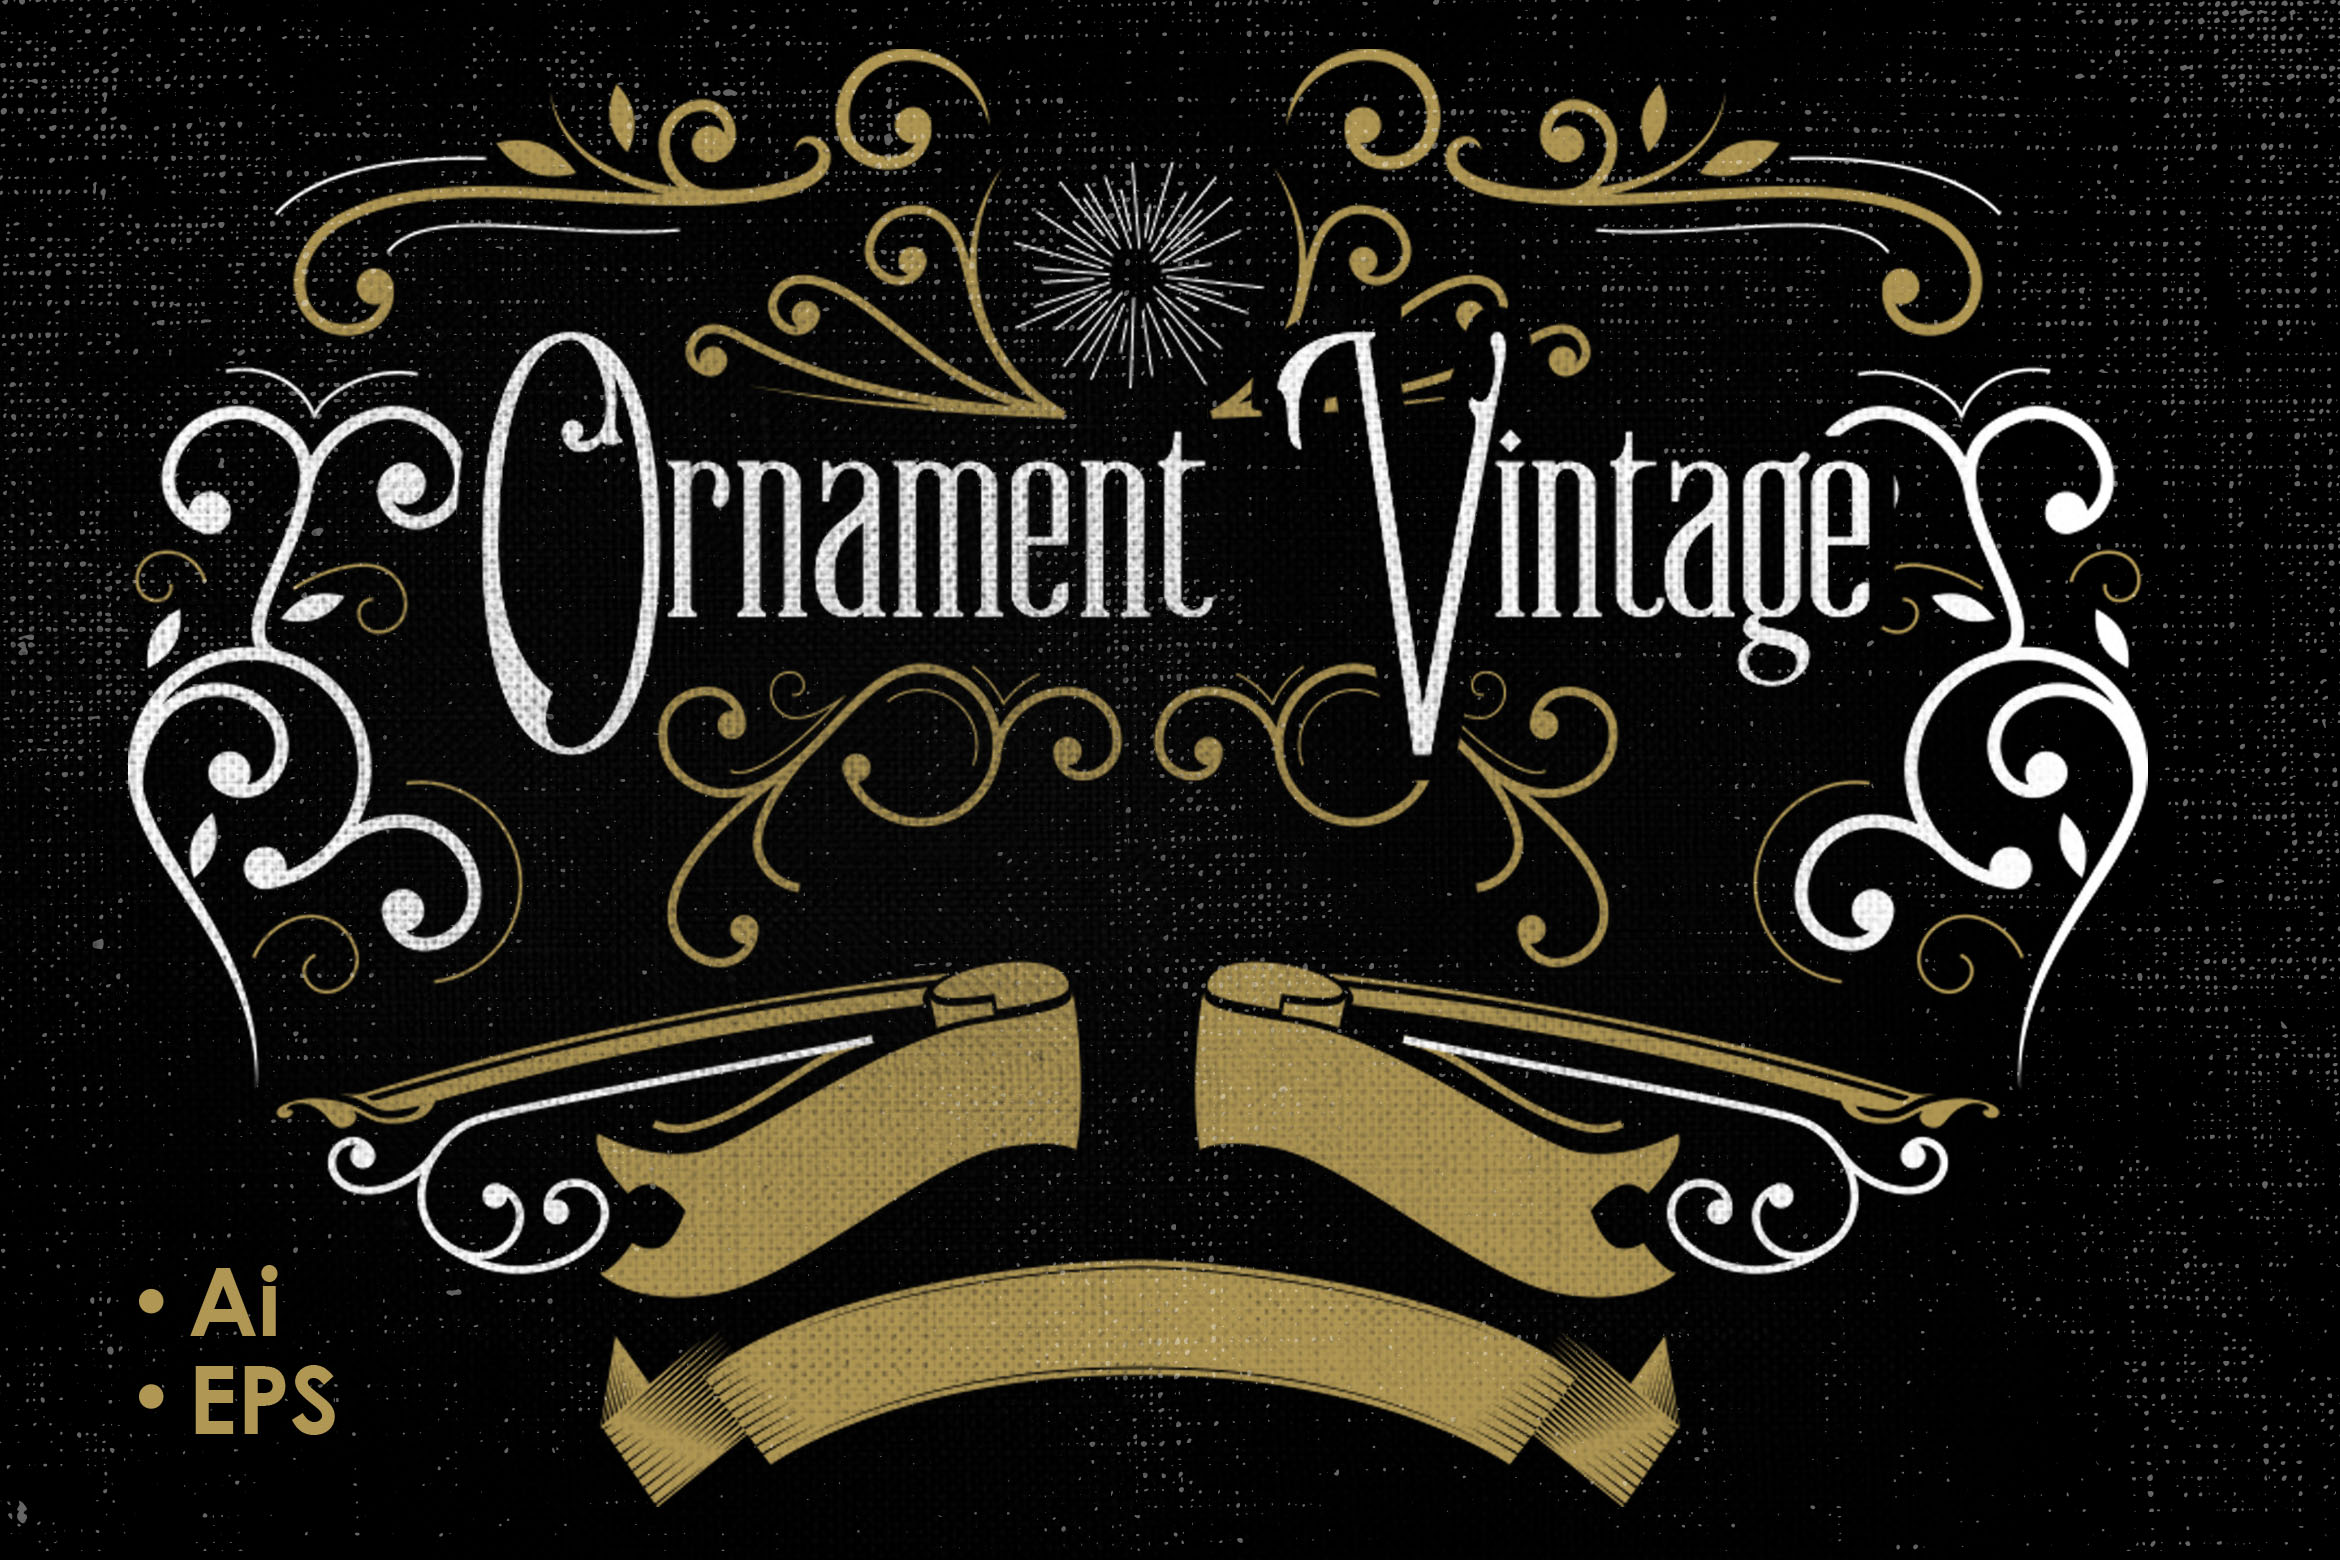 Vintage Vector Ornaments Graphic By storictype